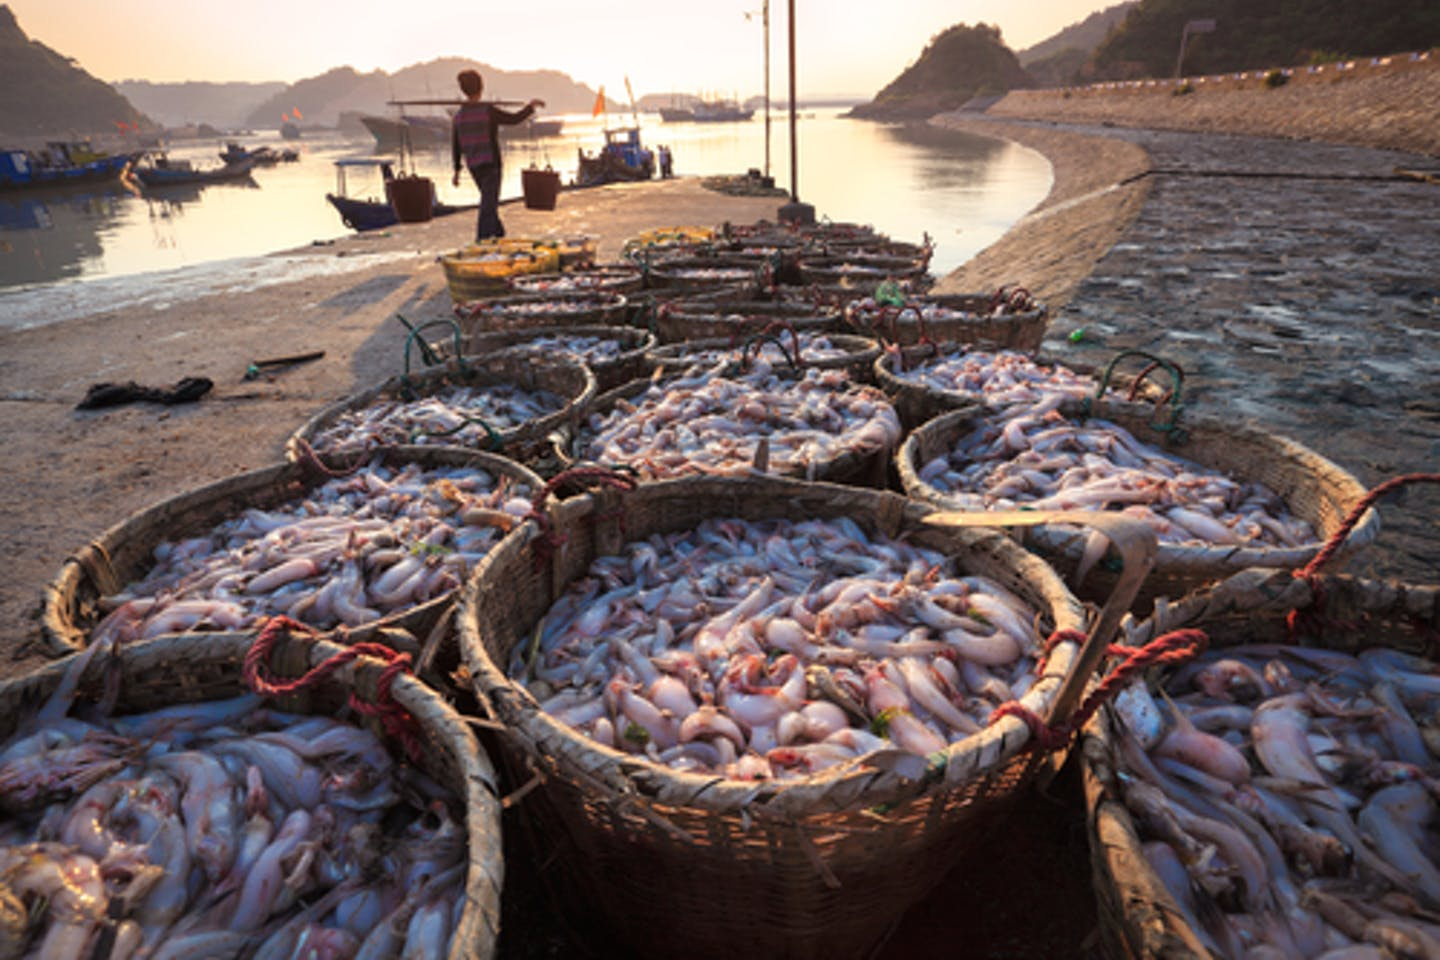 Sustainability of seafood industry